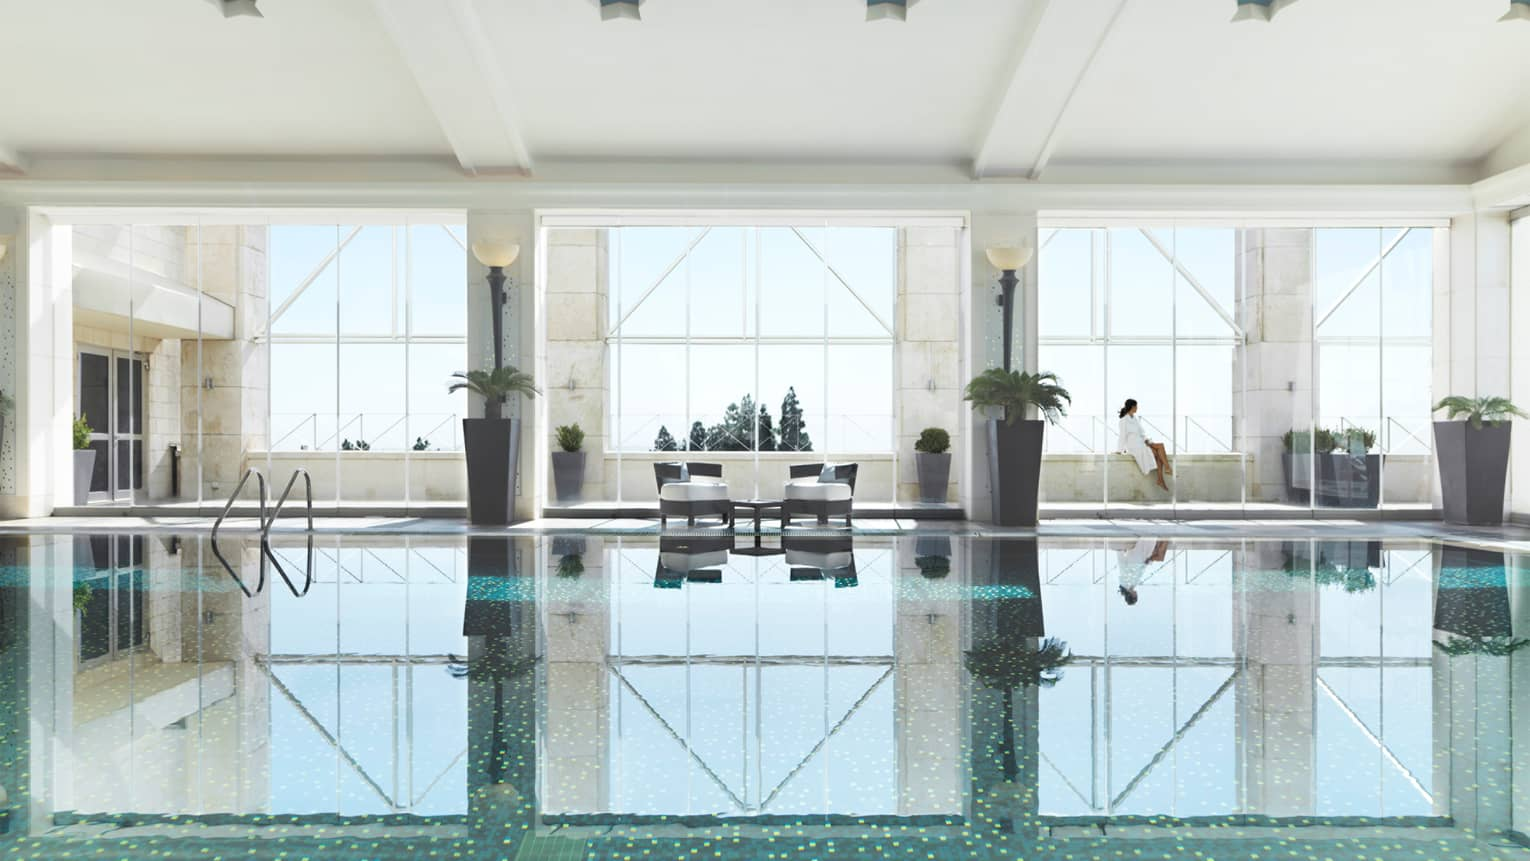 Indoor swimming pool reflecting three tall windows, woman in white bathrobe sits on ledge